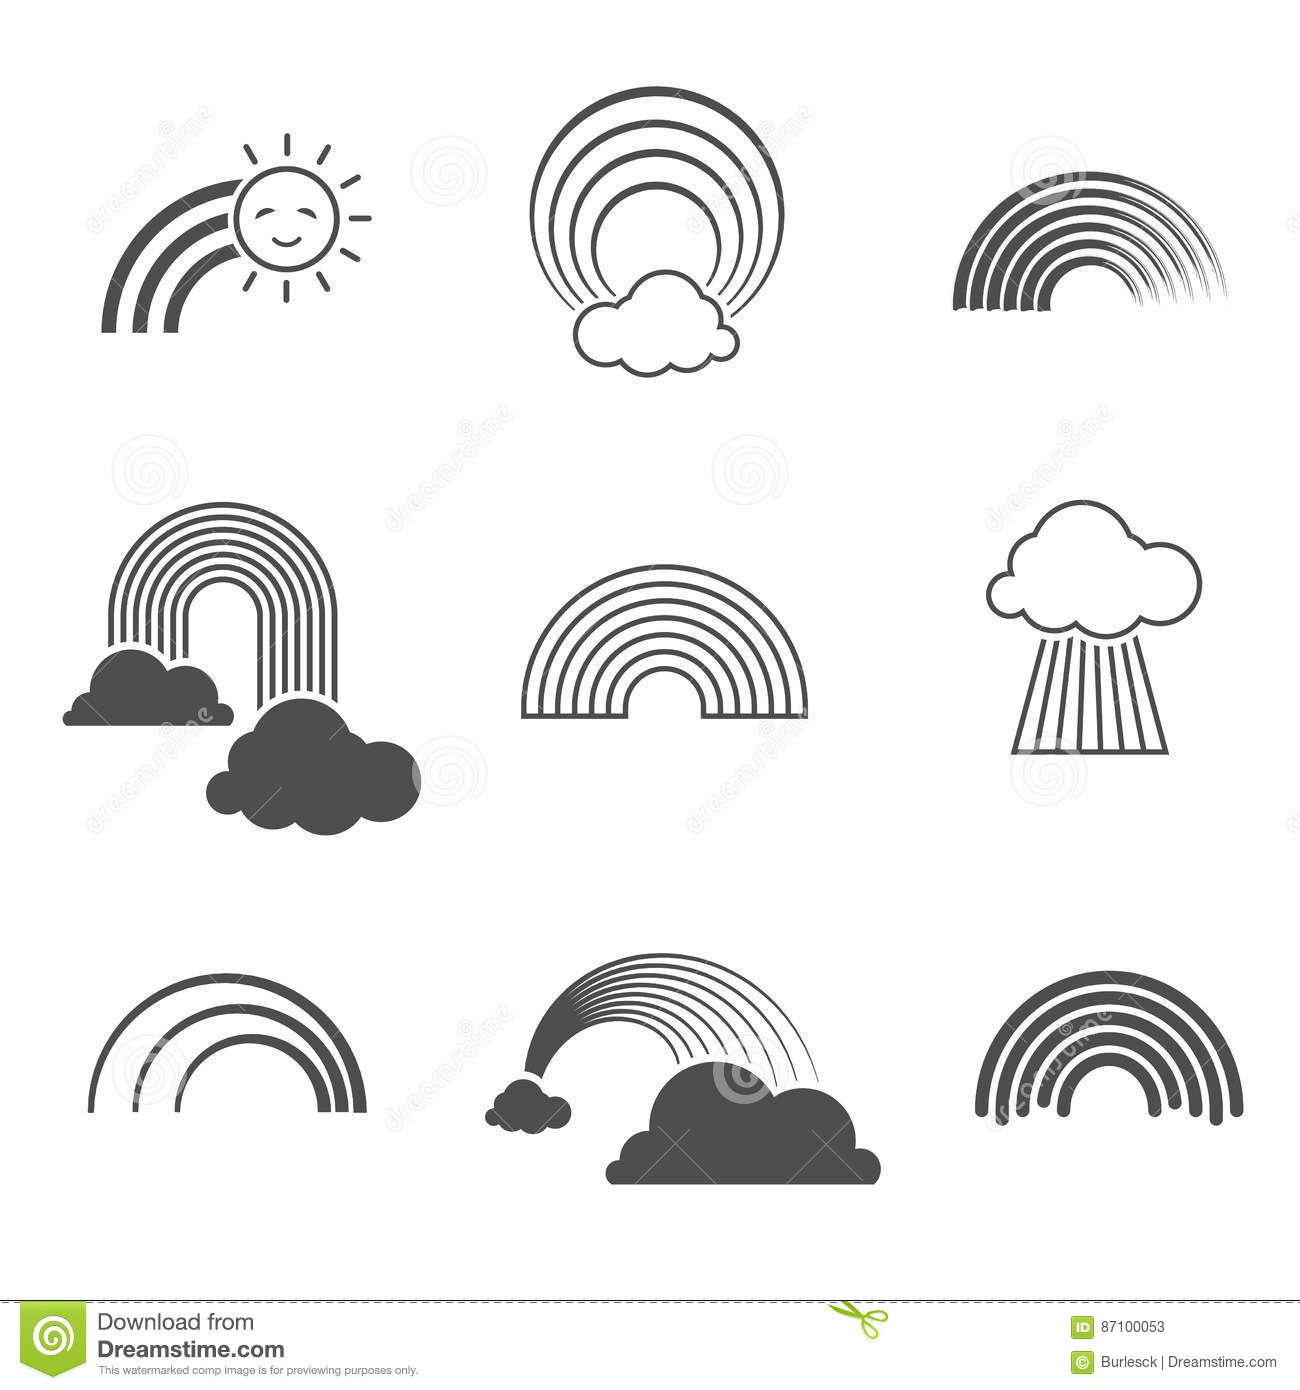 Vector black and white rainbow icons. Summer rainbows signs isolated on background